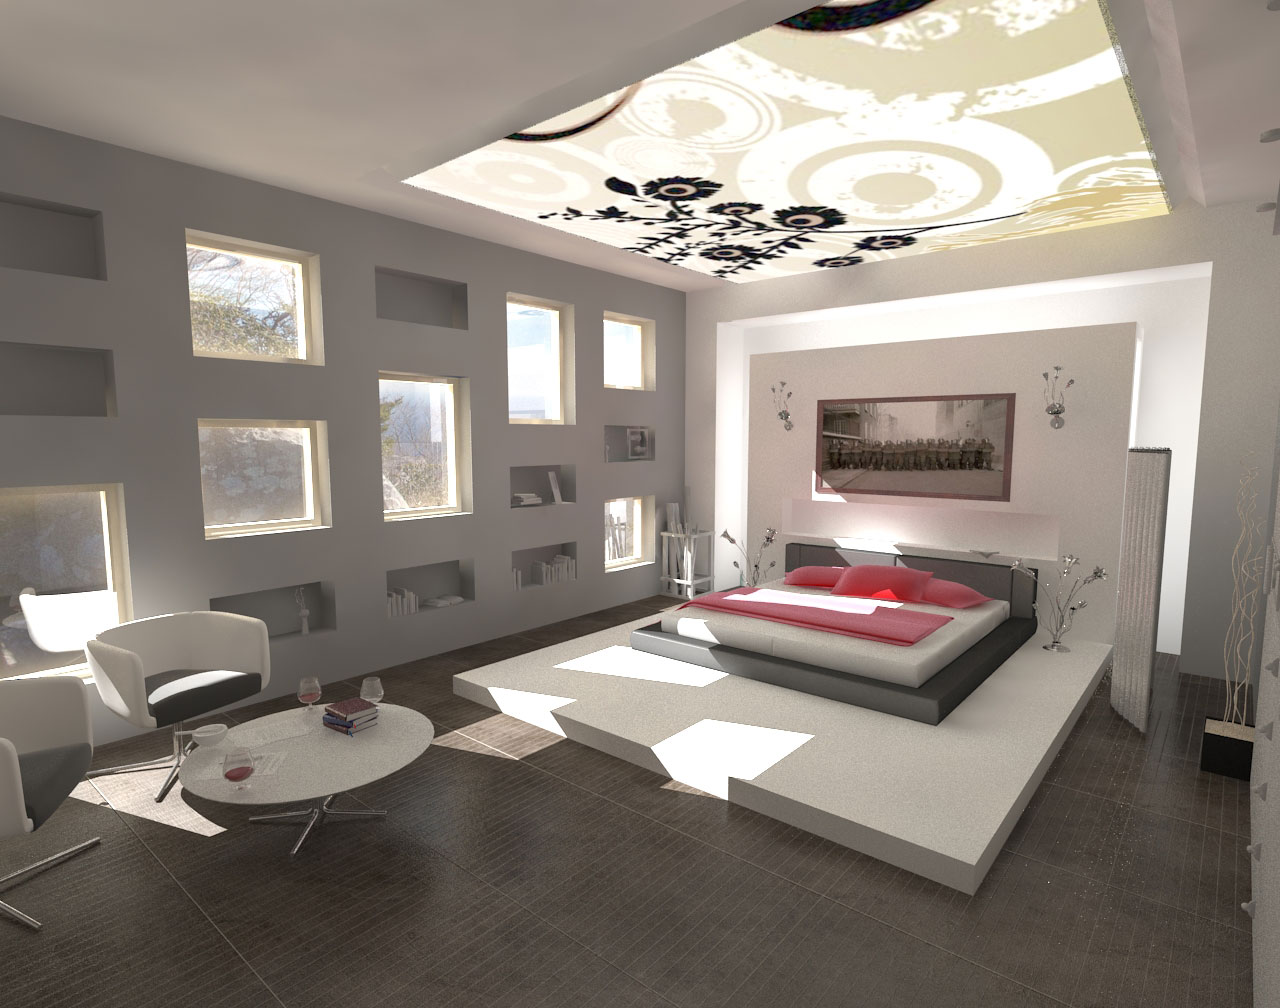 Decorations minimalist design modern bedroom interior for Bedroom design styles